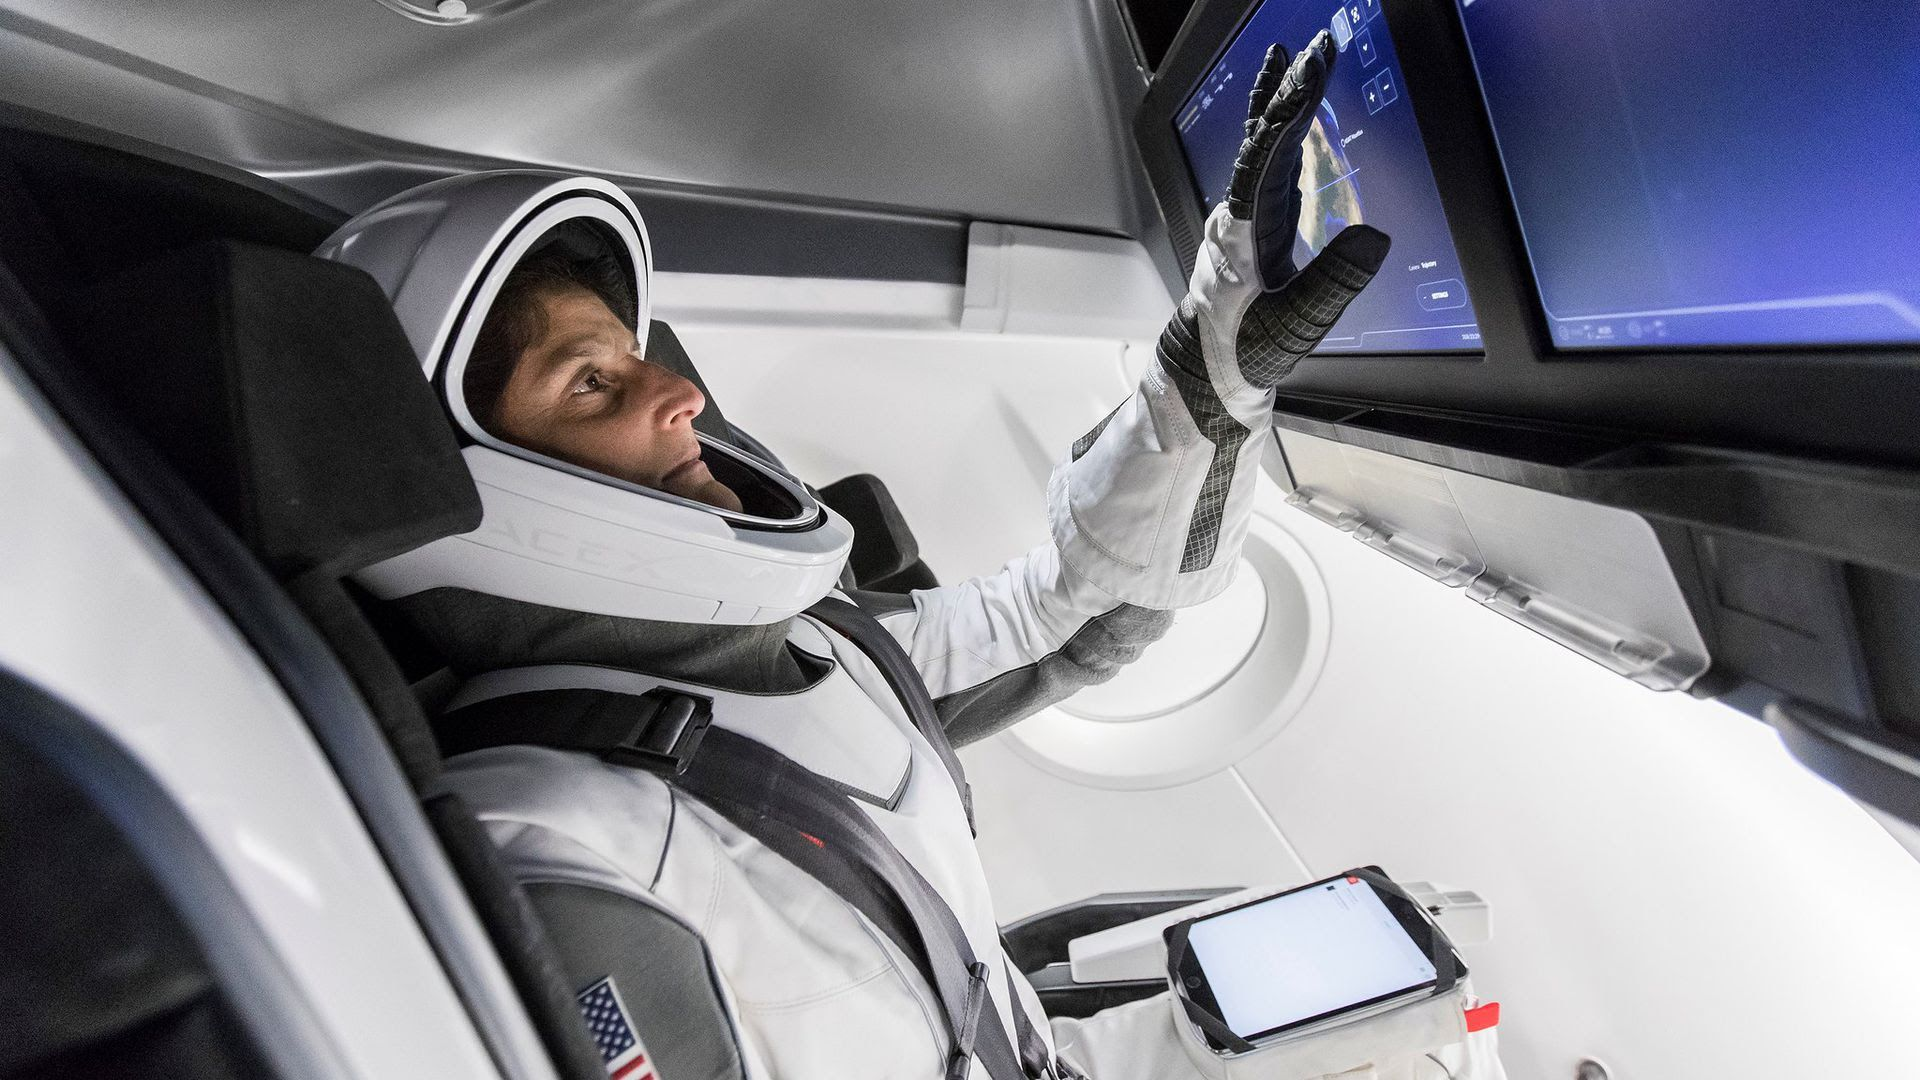 SpaceX inks deal to fly space tourists to orbit - Axios